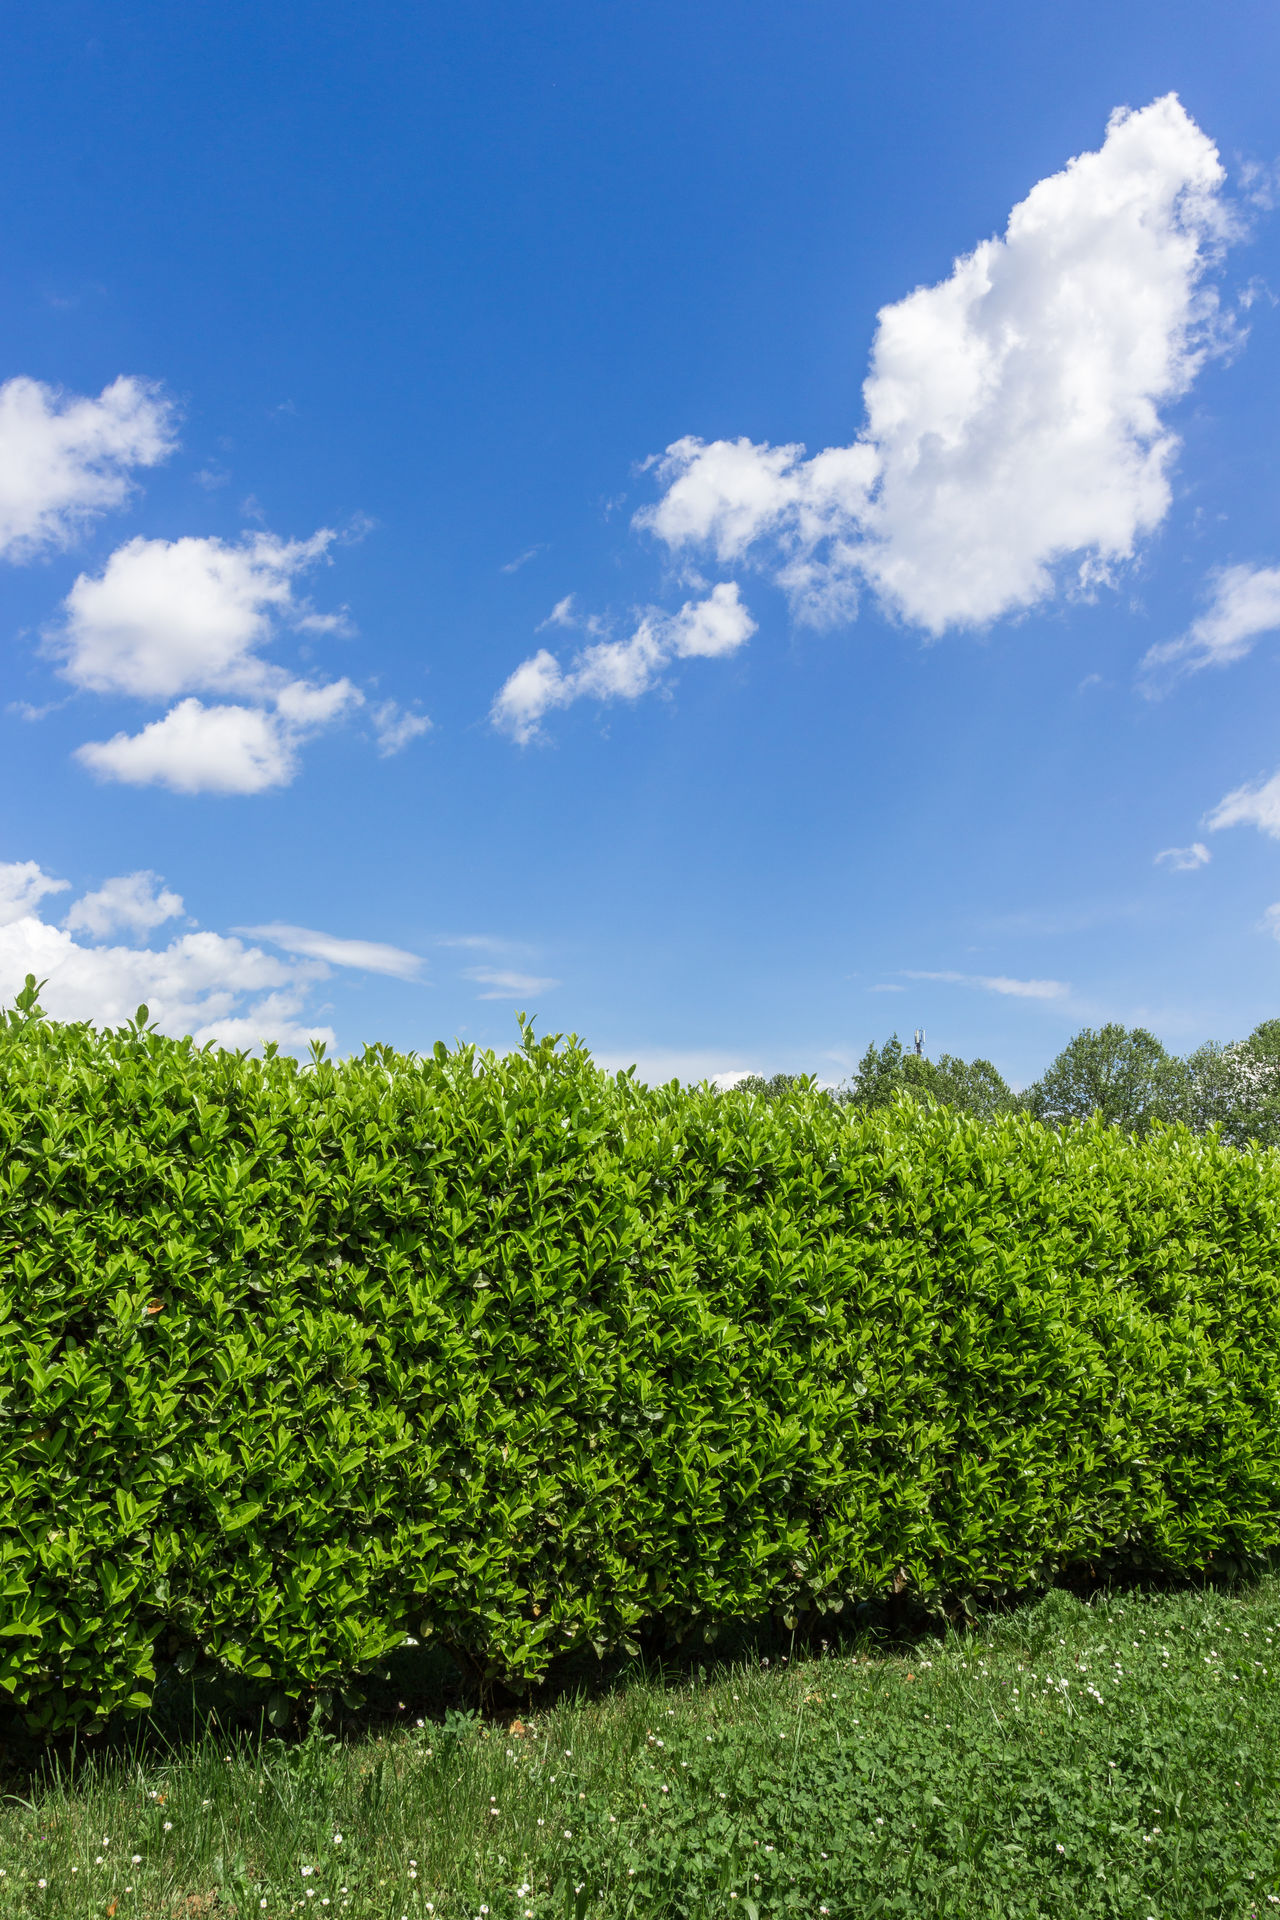 Green bush on bright blue sunny sky background Background Blue Border Bush Clouds Cloudscape Evergreen Fence Field Garden Gardening Grass Green Growth Hedge Hedgerow Hedges Isolated Landscape Leaf Meadow Natural Nature Park Plant